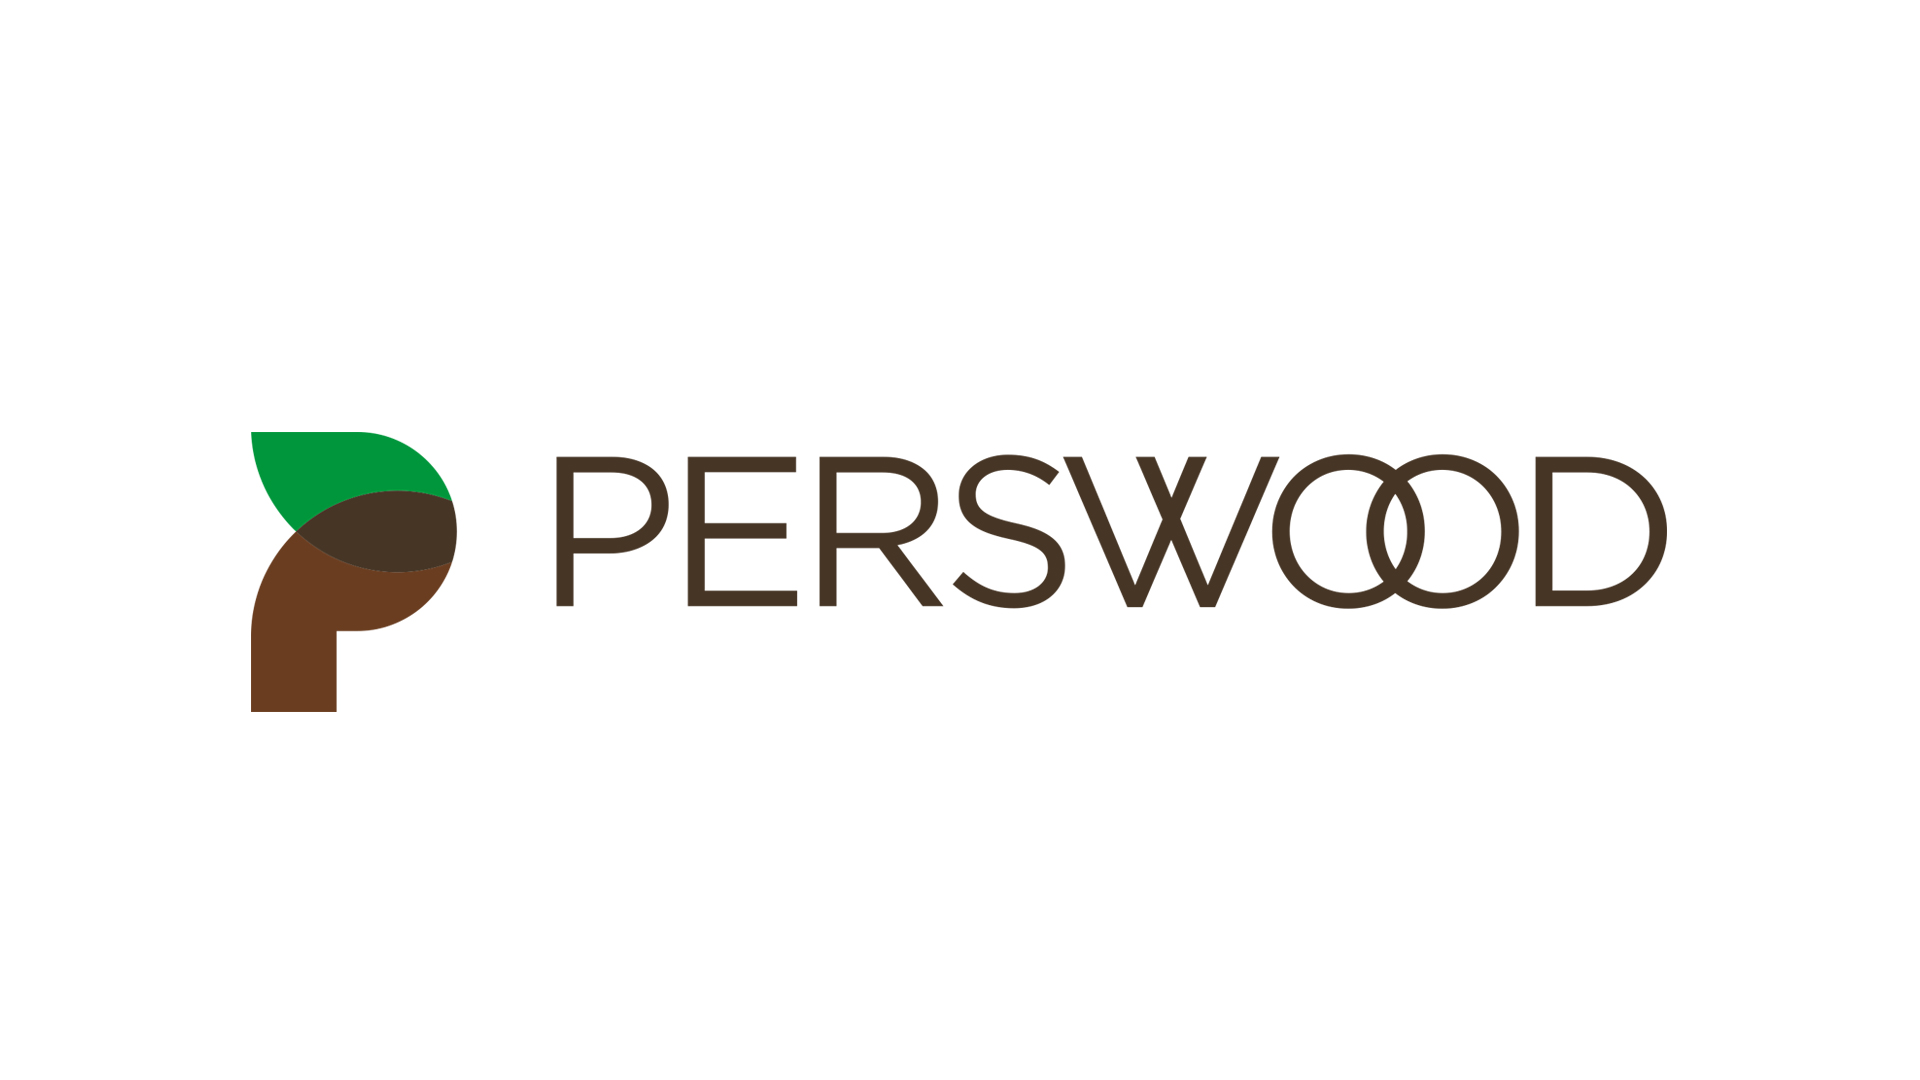 PERSWOOD